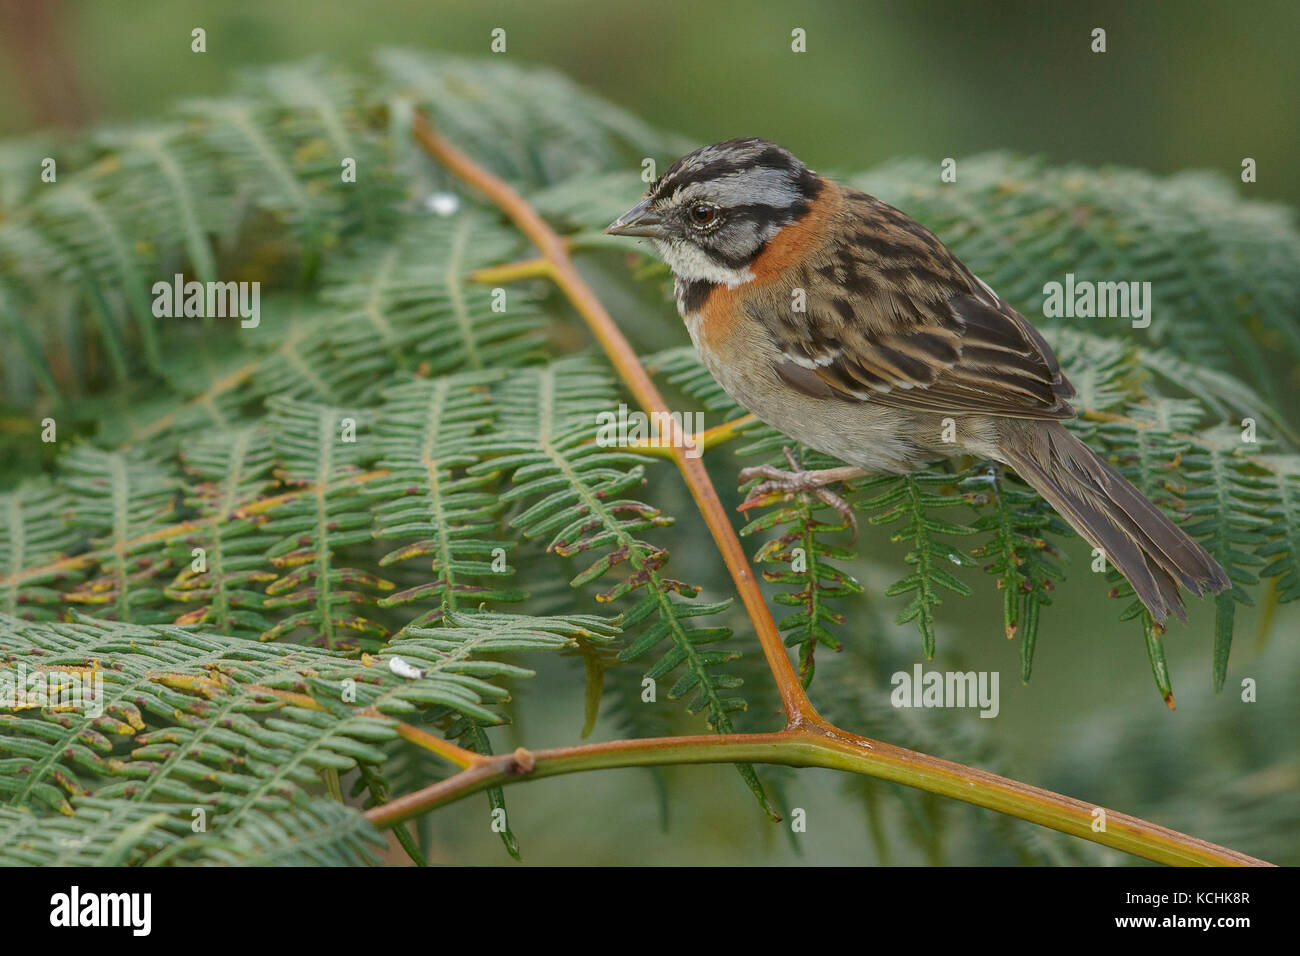 Rufous-collared Sparrow (Zonotrichia capensis) perched on a branch in the mountains of Colombia, South America. Stock Photo